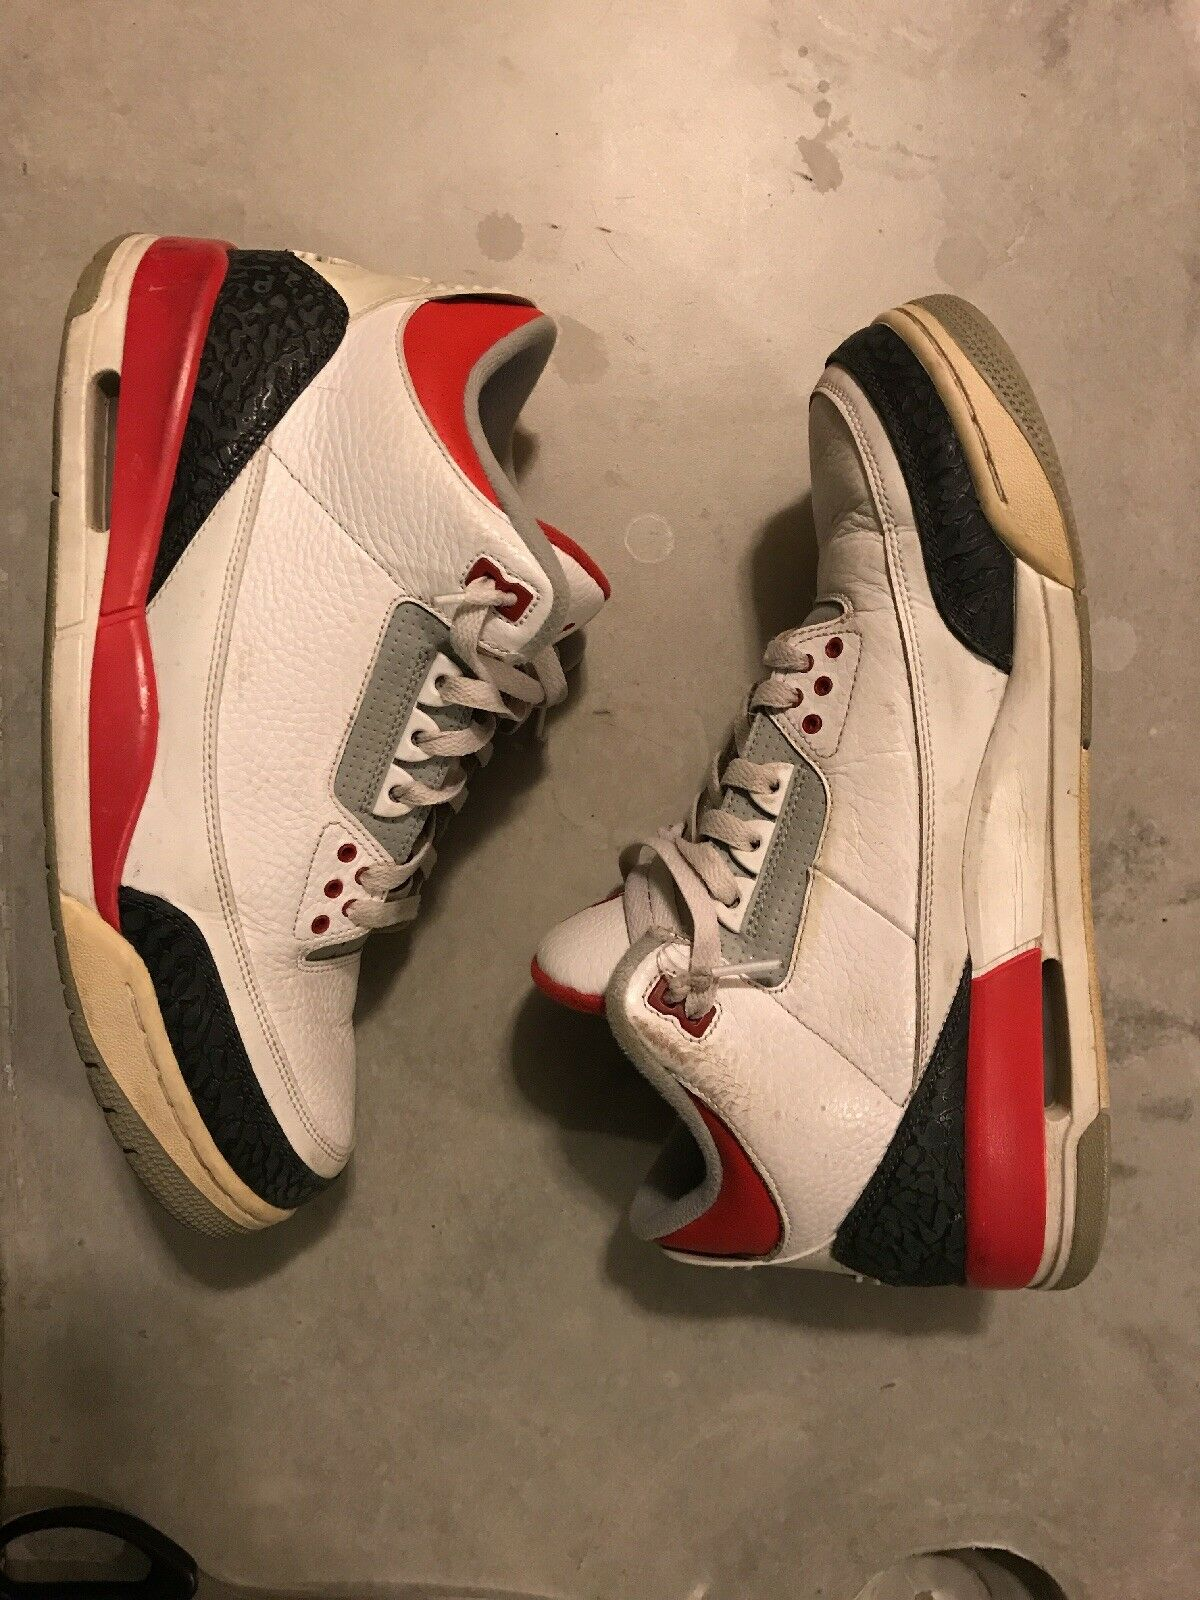 The most popular shoes for men and women Nike Air Jordan Retro III 3 White Fire Red Cement Grey Comfortable